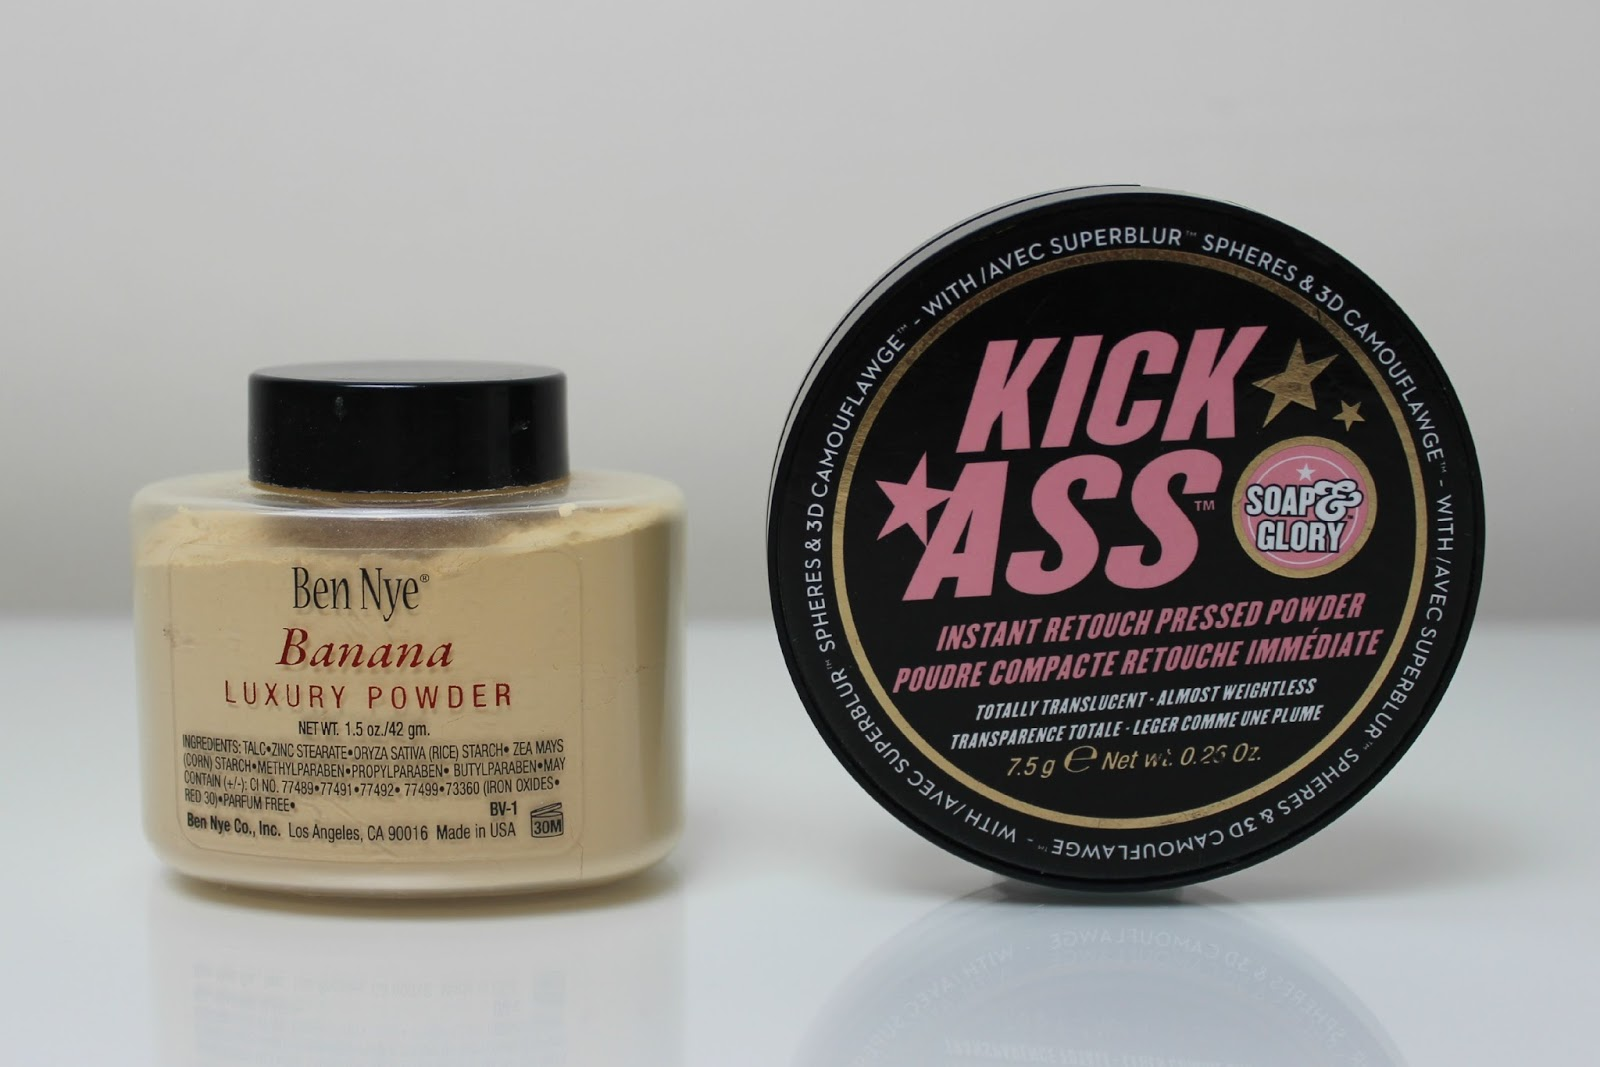 A picture of Ben Nye Banana Luxury Powder and Soap & Glory Instant Retouch Pressed Powder